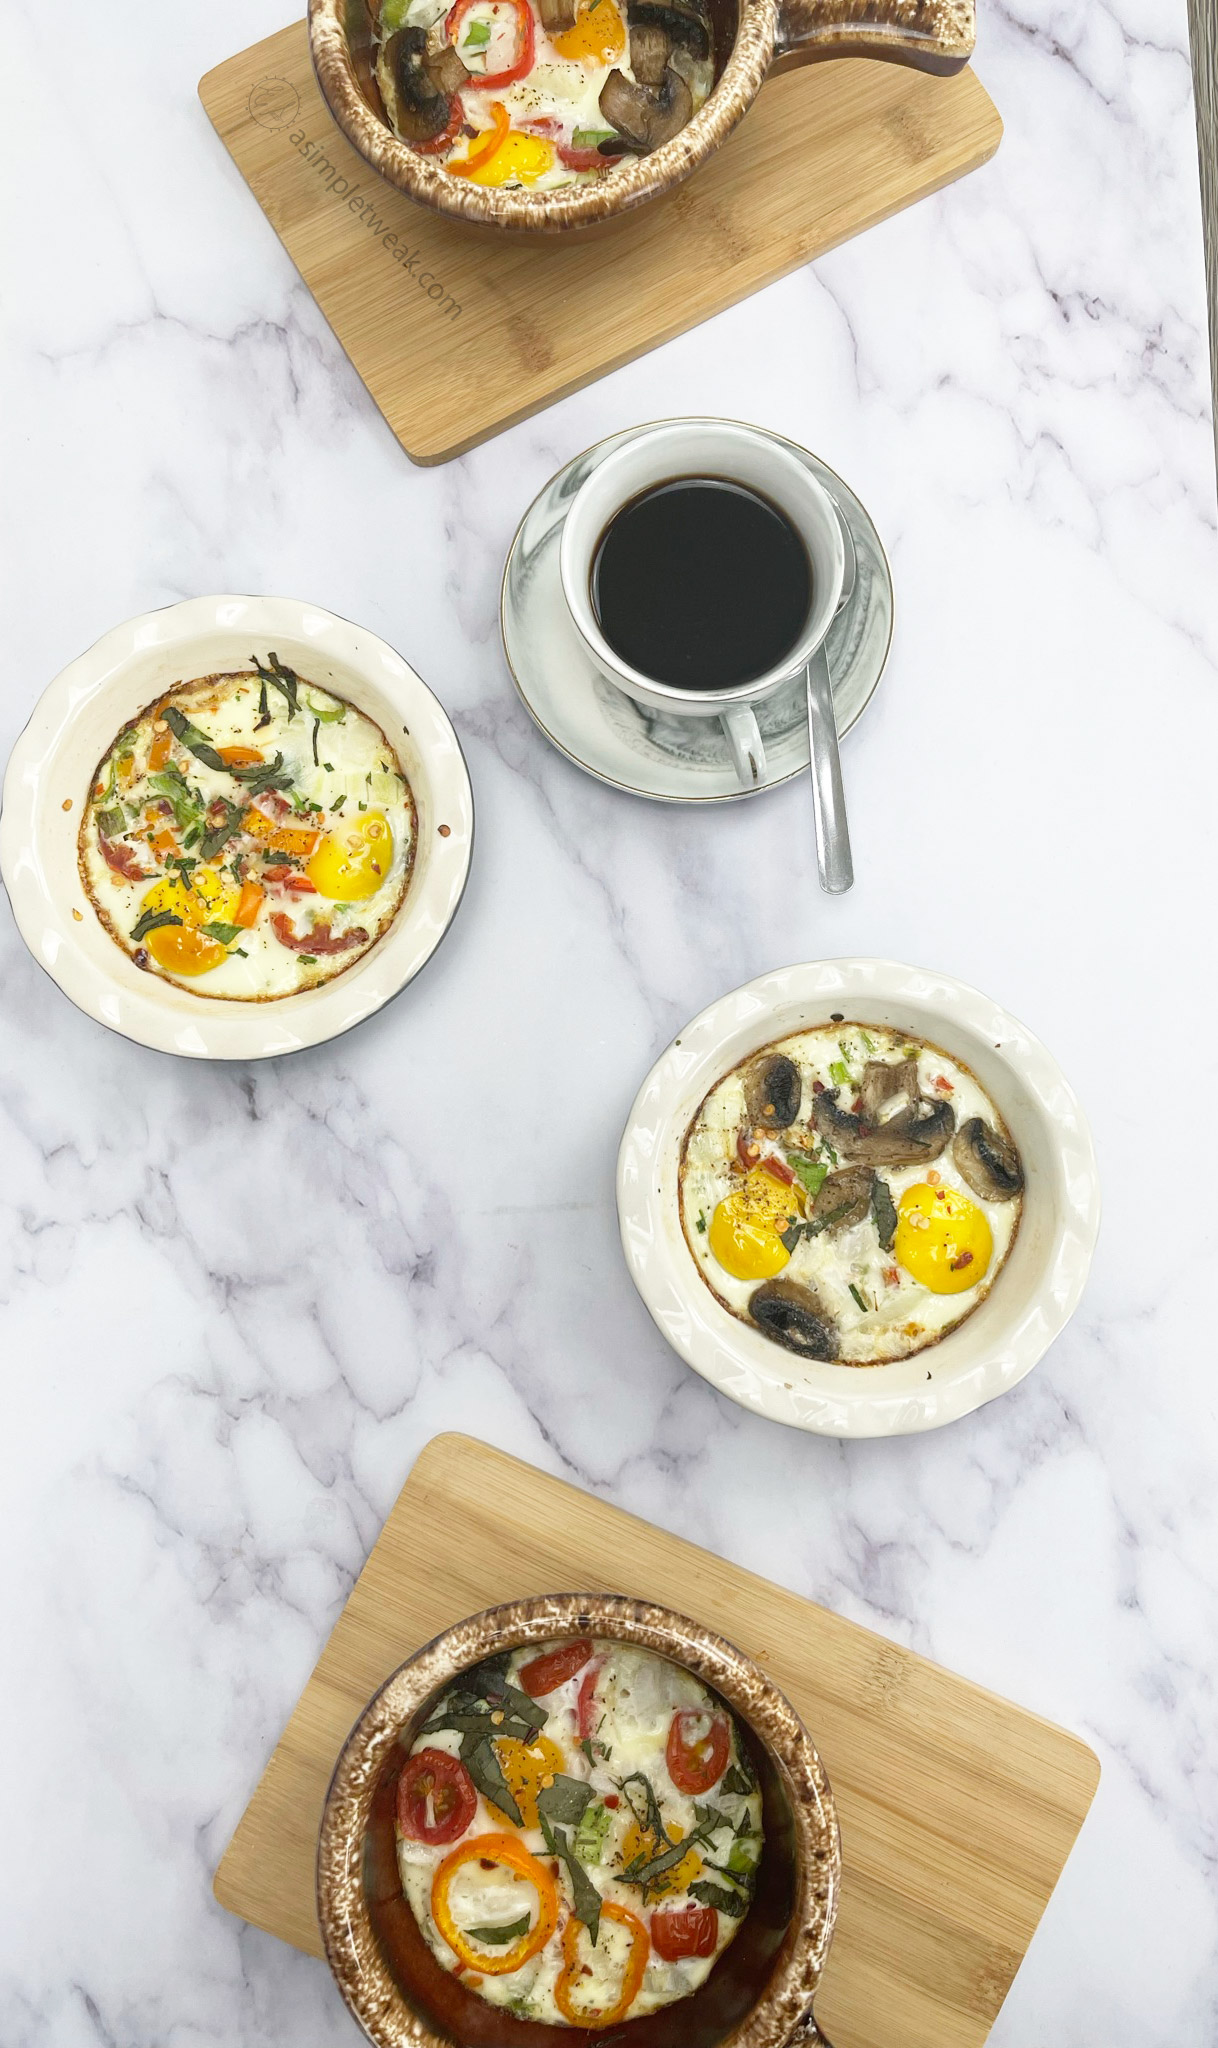 These baked eggs are delicious and easy to make. In less than 20 minutes, you'll be enjoying a healthy and satisfying breakfast.